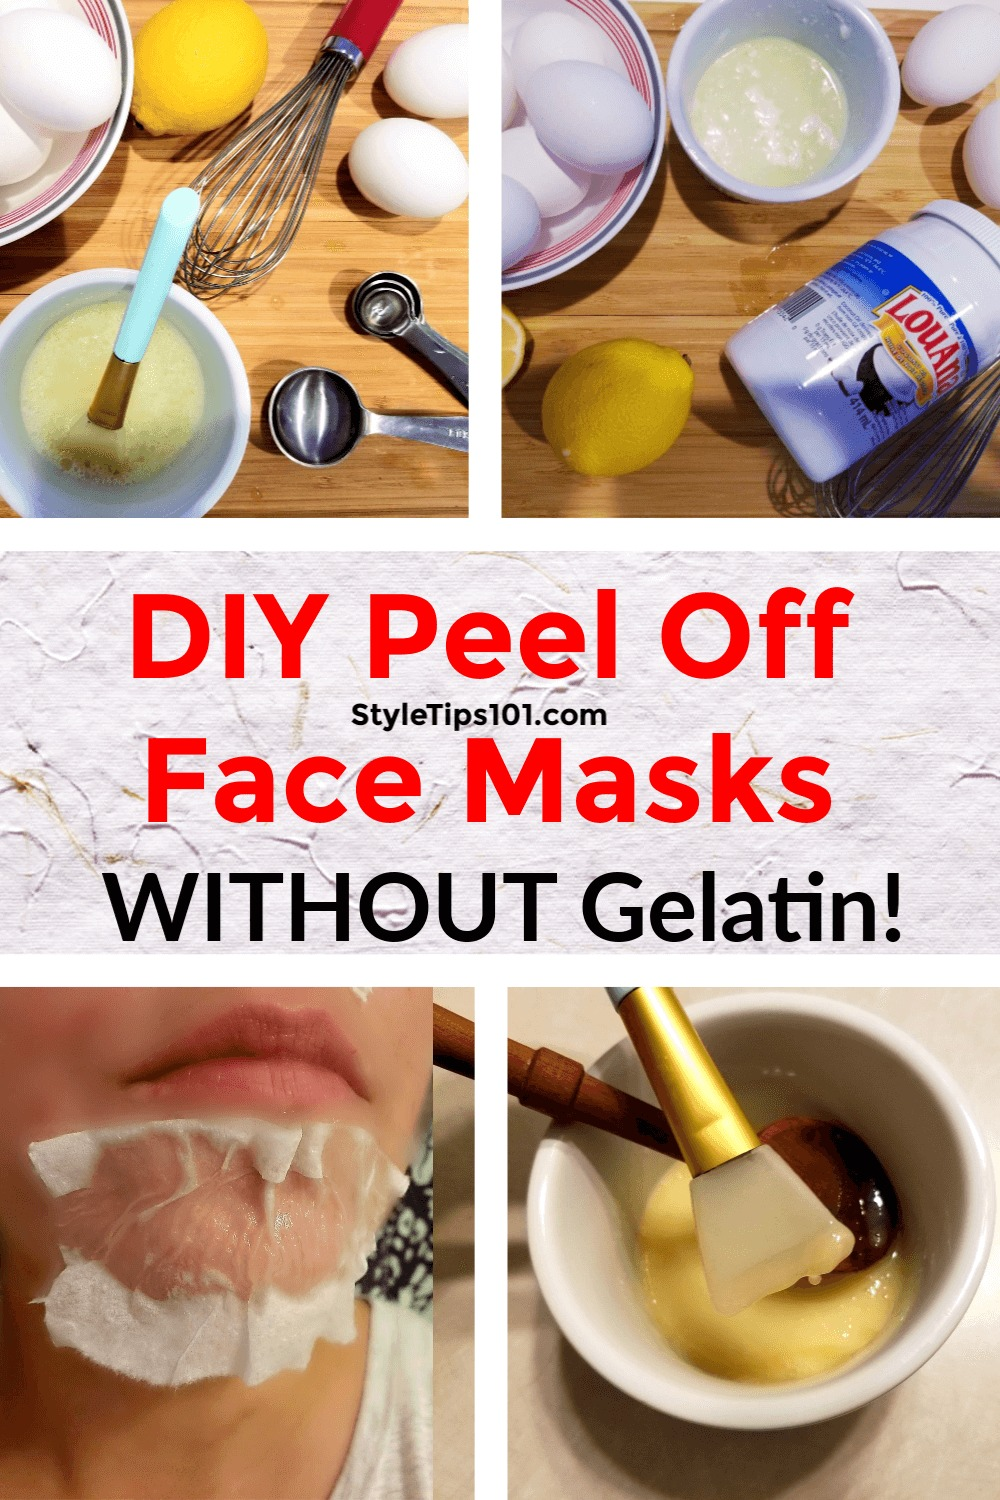 We\'ve got 3 different DIY peel off face mask without gelatin recipes that will unclog pores, prevent acne, get rid of blackheads, and more!